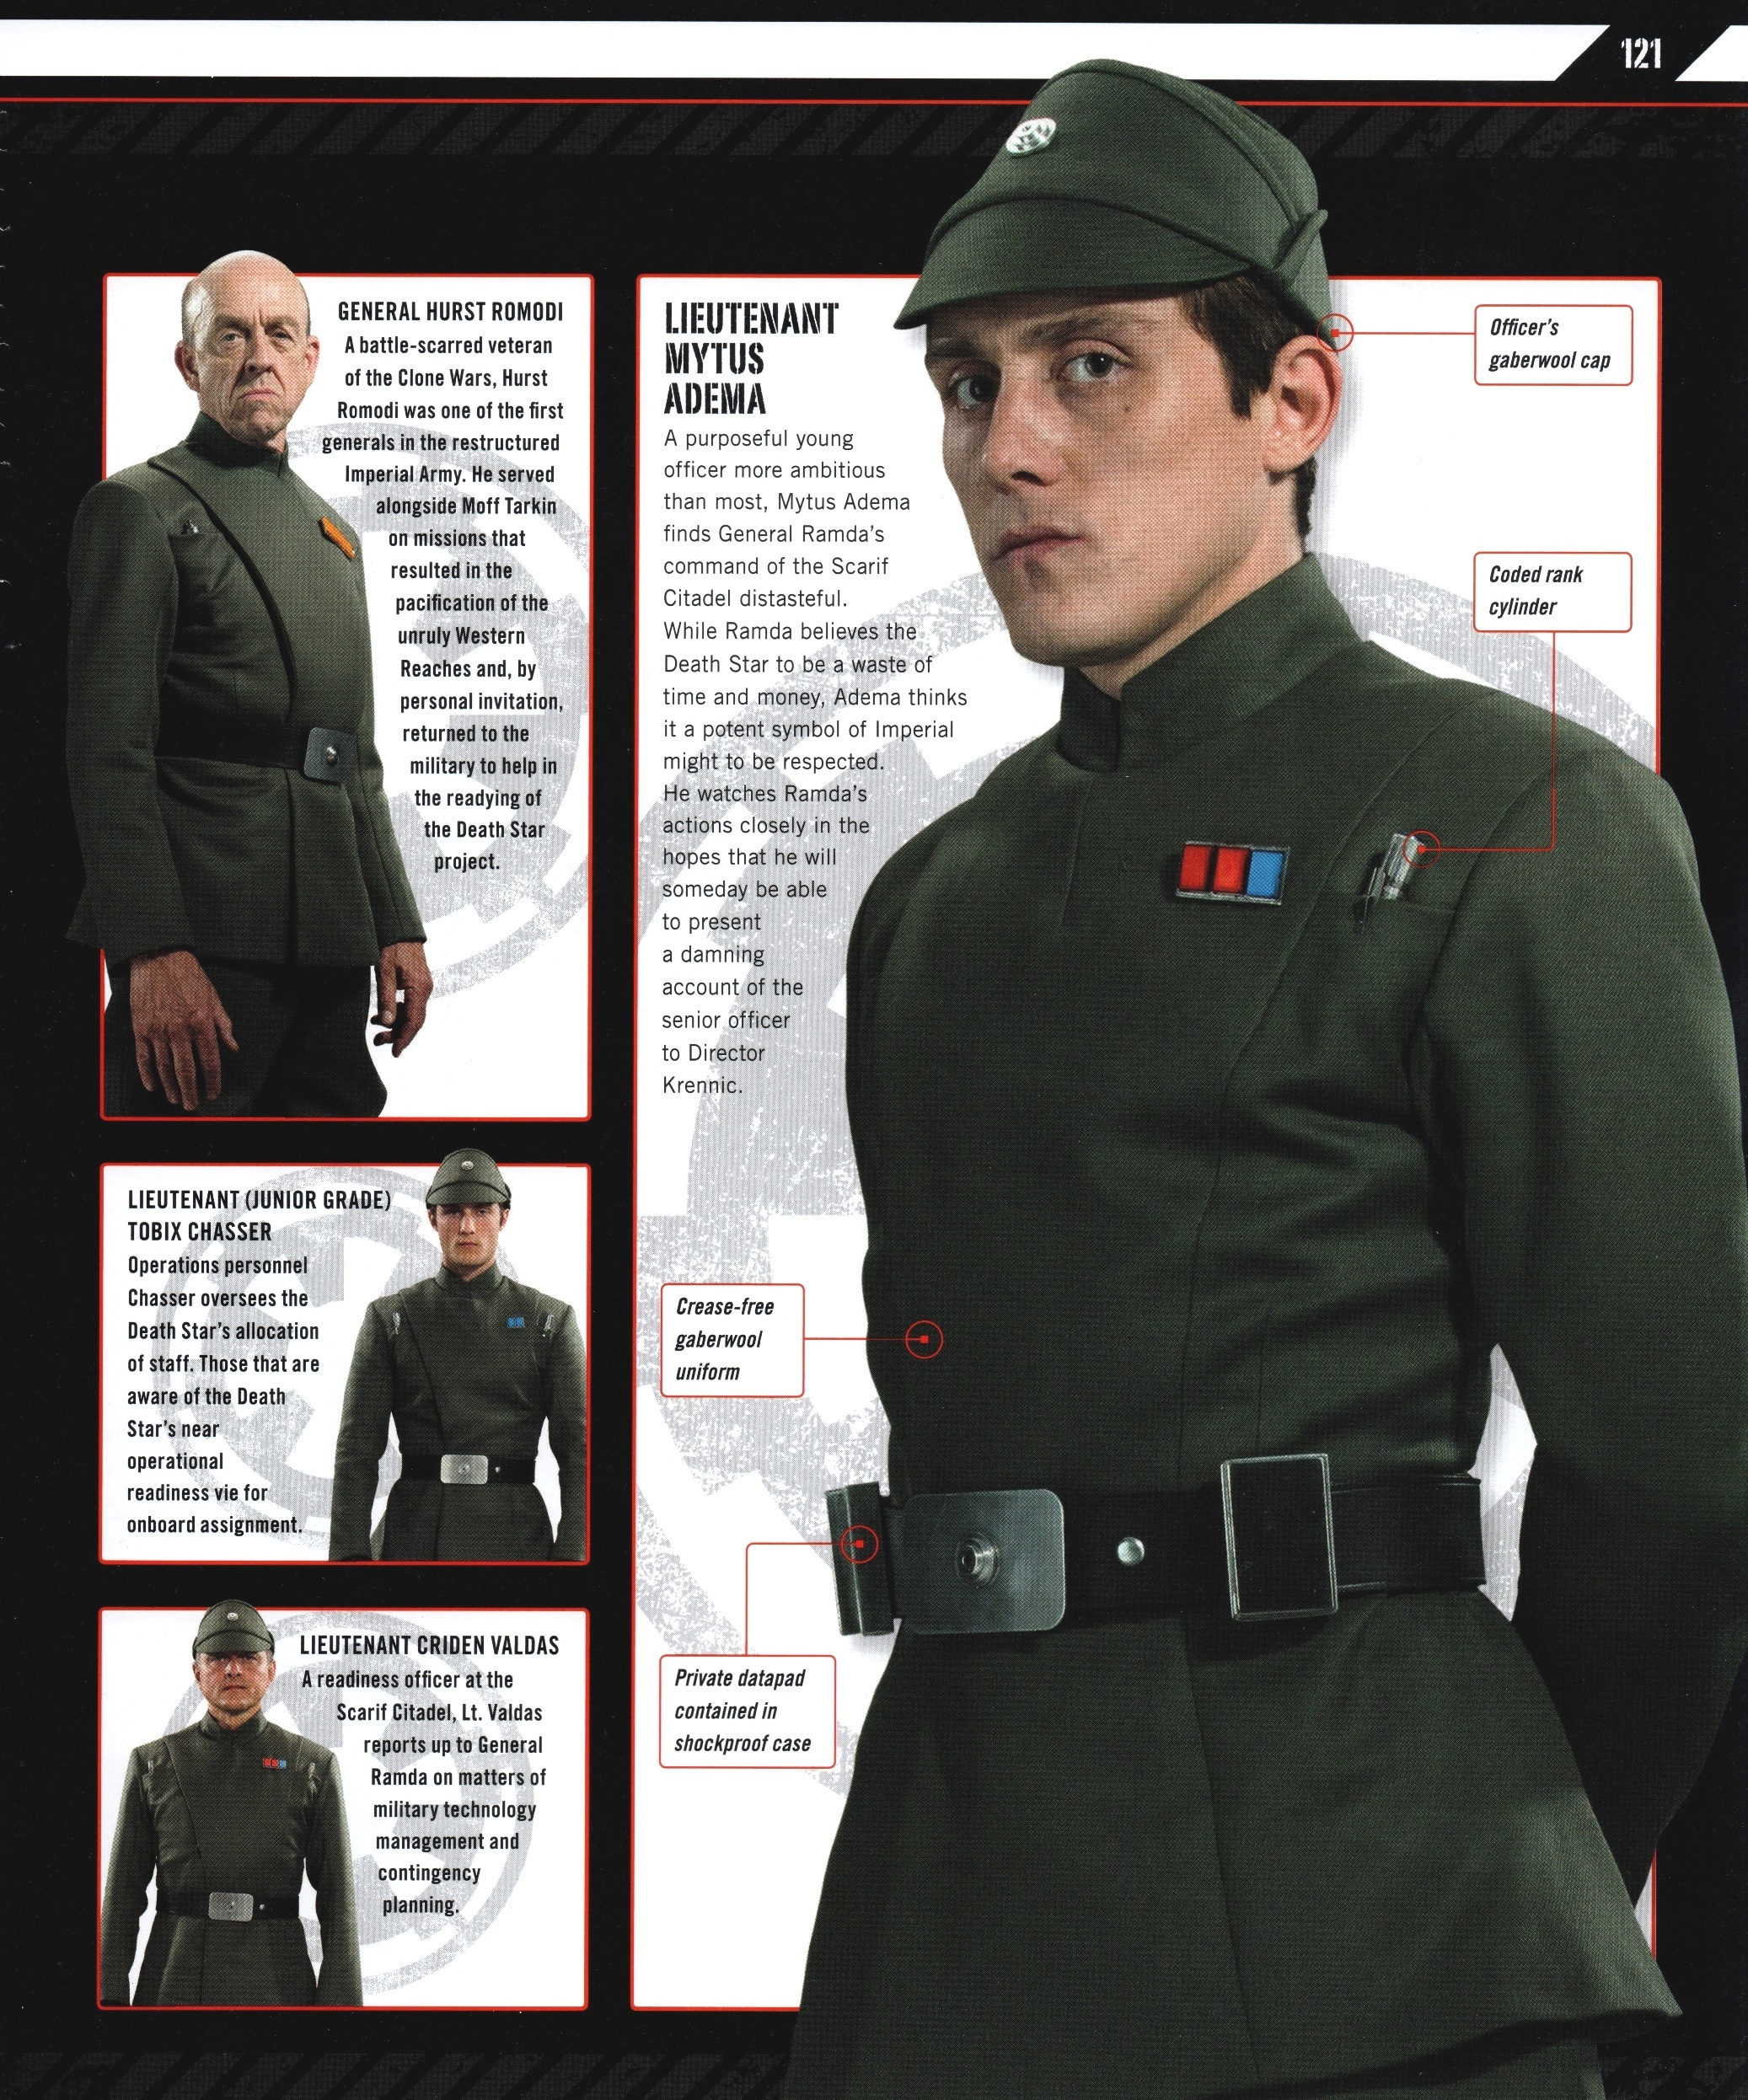 Rogue One Ultimate Visual Guide (b0bafett_Empire) p121